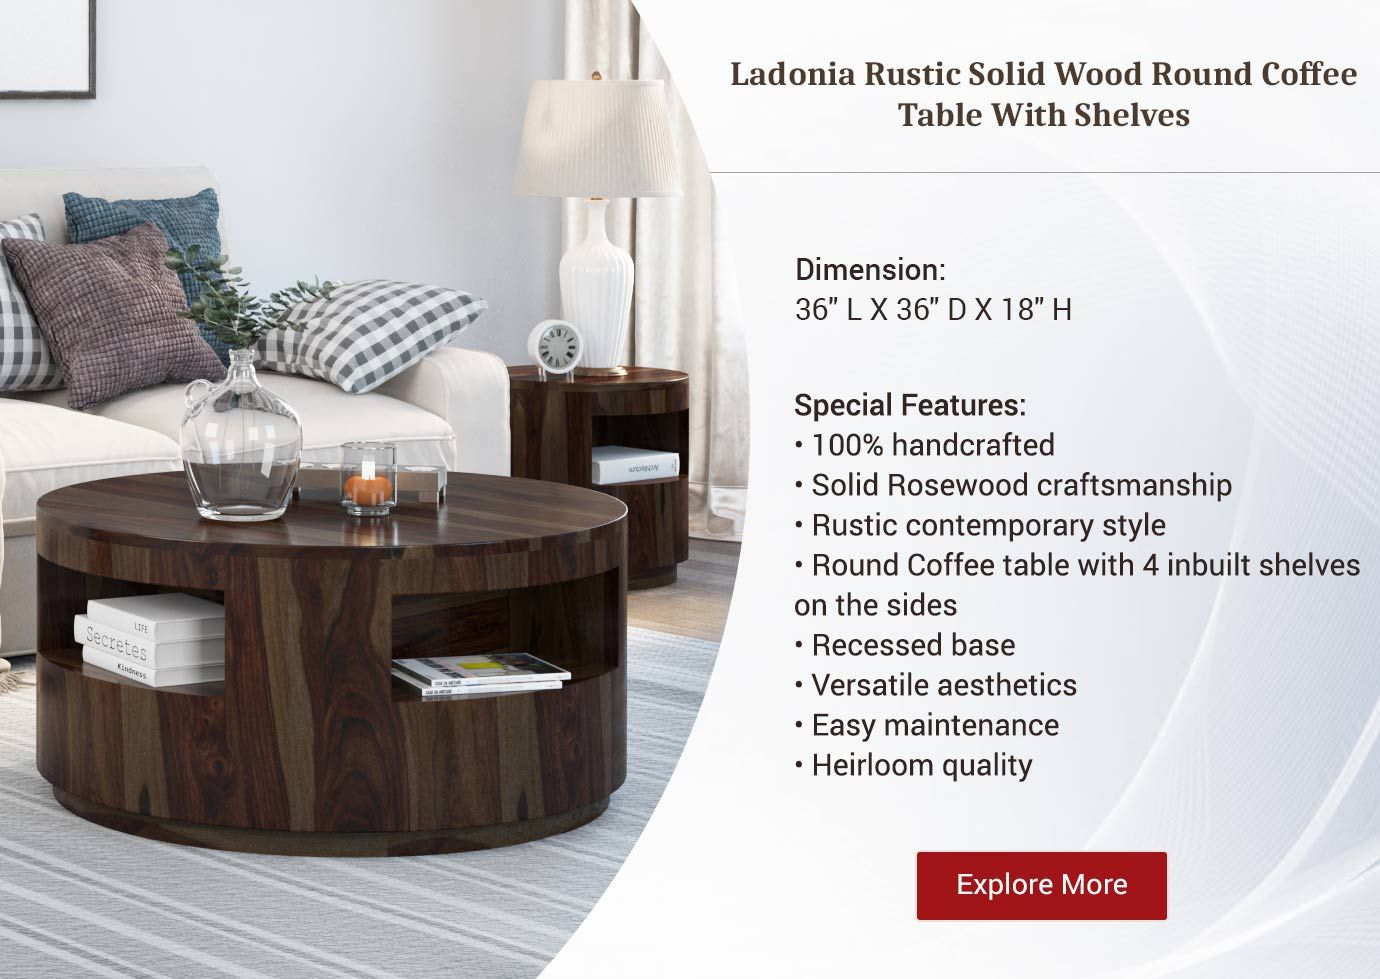 Ladonia Rustic Solid Wood Round Coffee Table Round Wood Coffee Table Coffee Table With Shelf Round Coffee Table [ 979 x 1380 Pixel ]